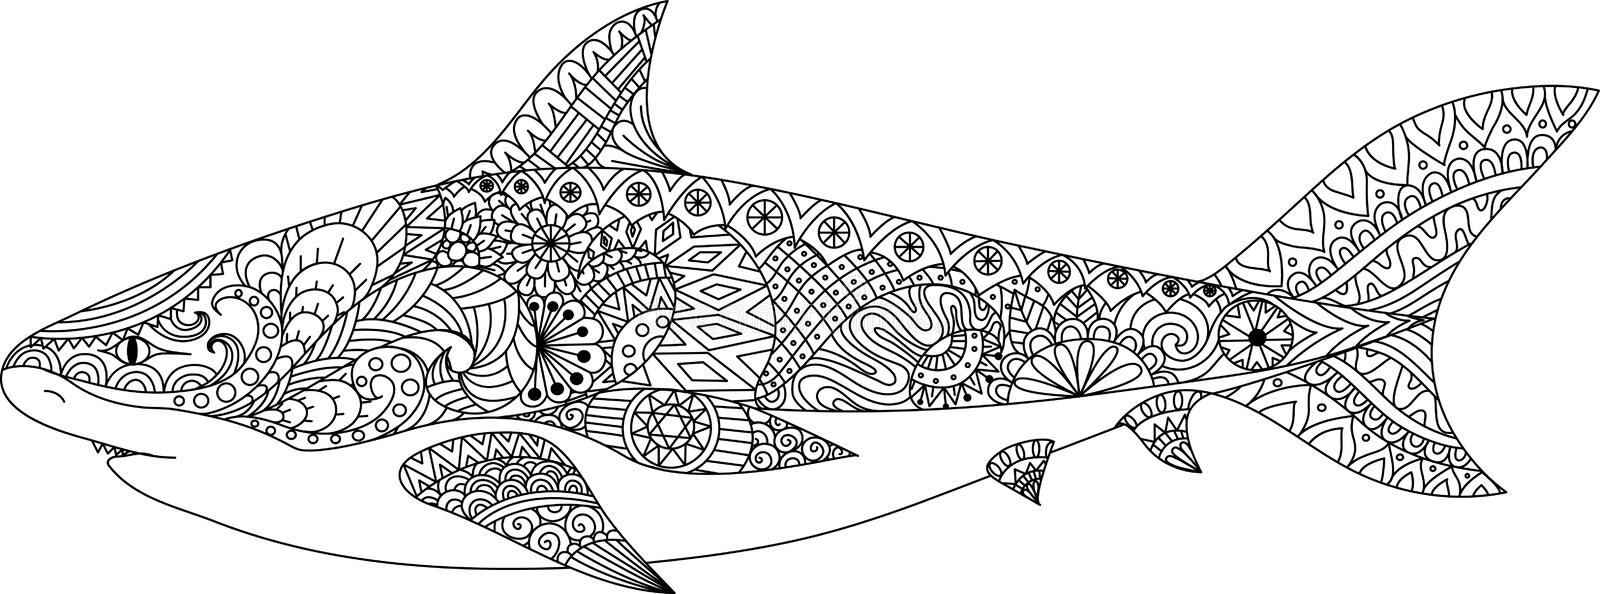 Shark Line Art Design For Coloring Book For Adult, Tattoo, T Shirt ...